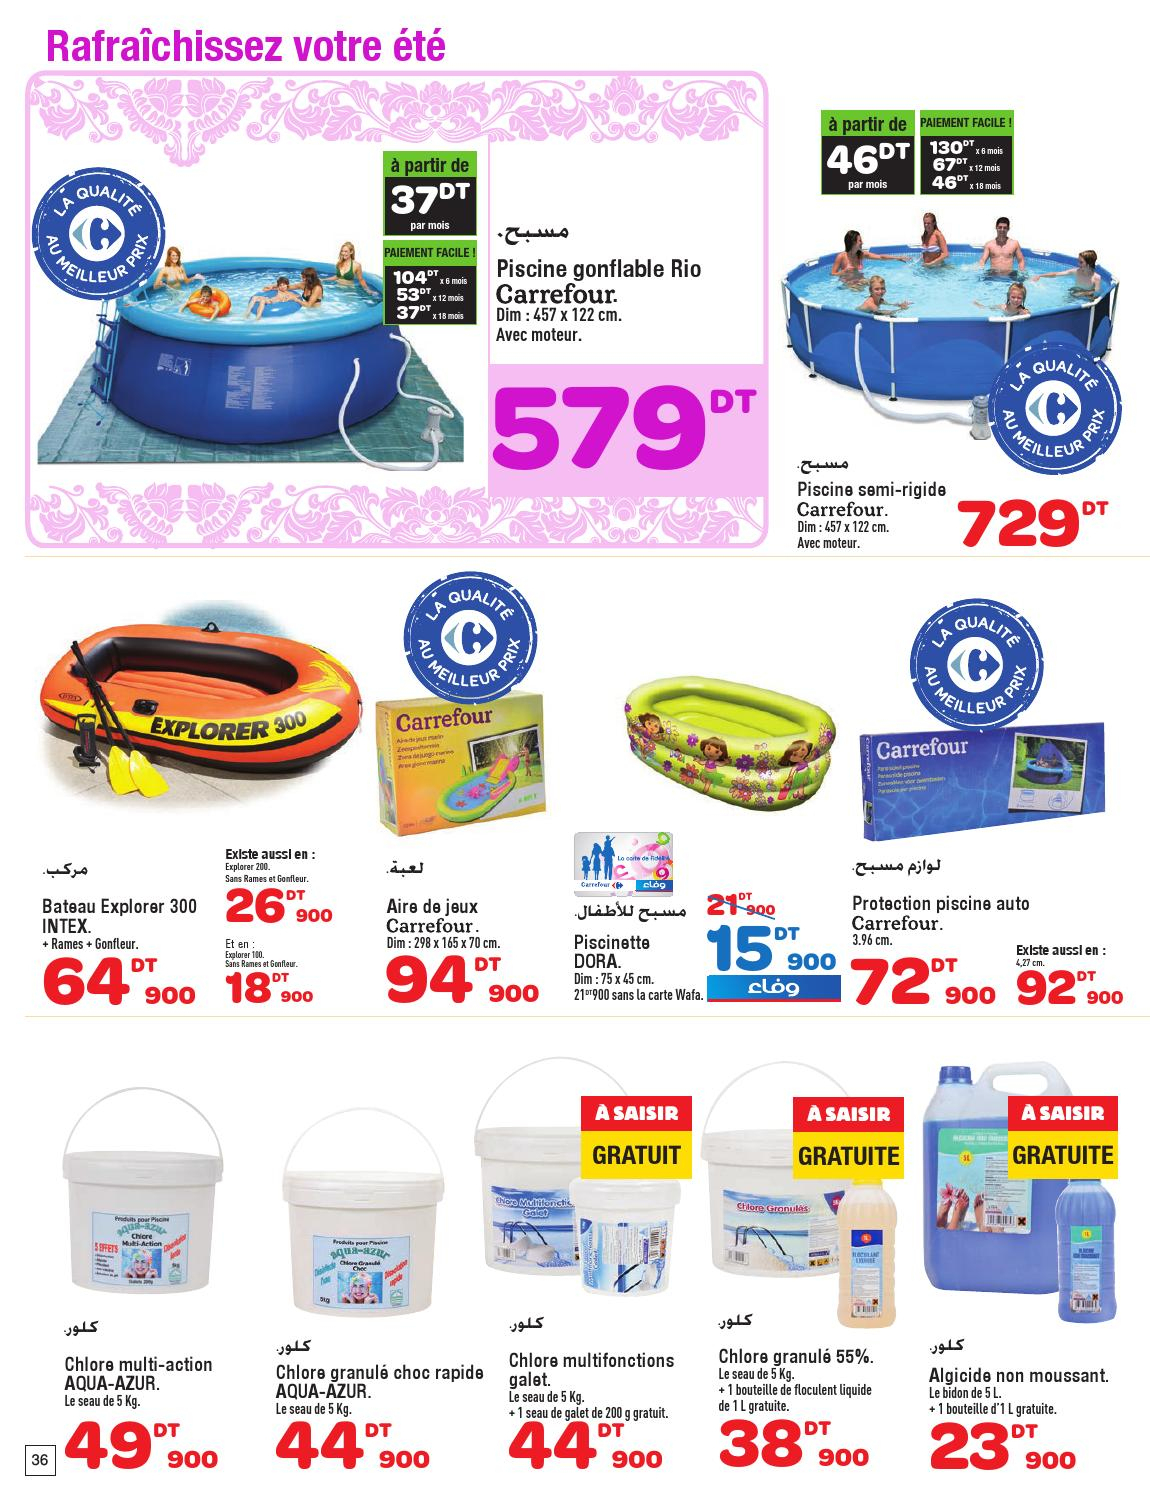 Catalogue Carrefour By Carrefour Tunisie - Issuu dedans Piscine Enfant Carrefour